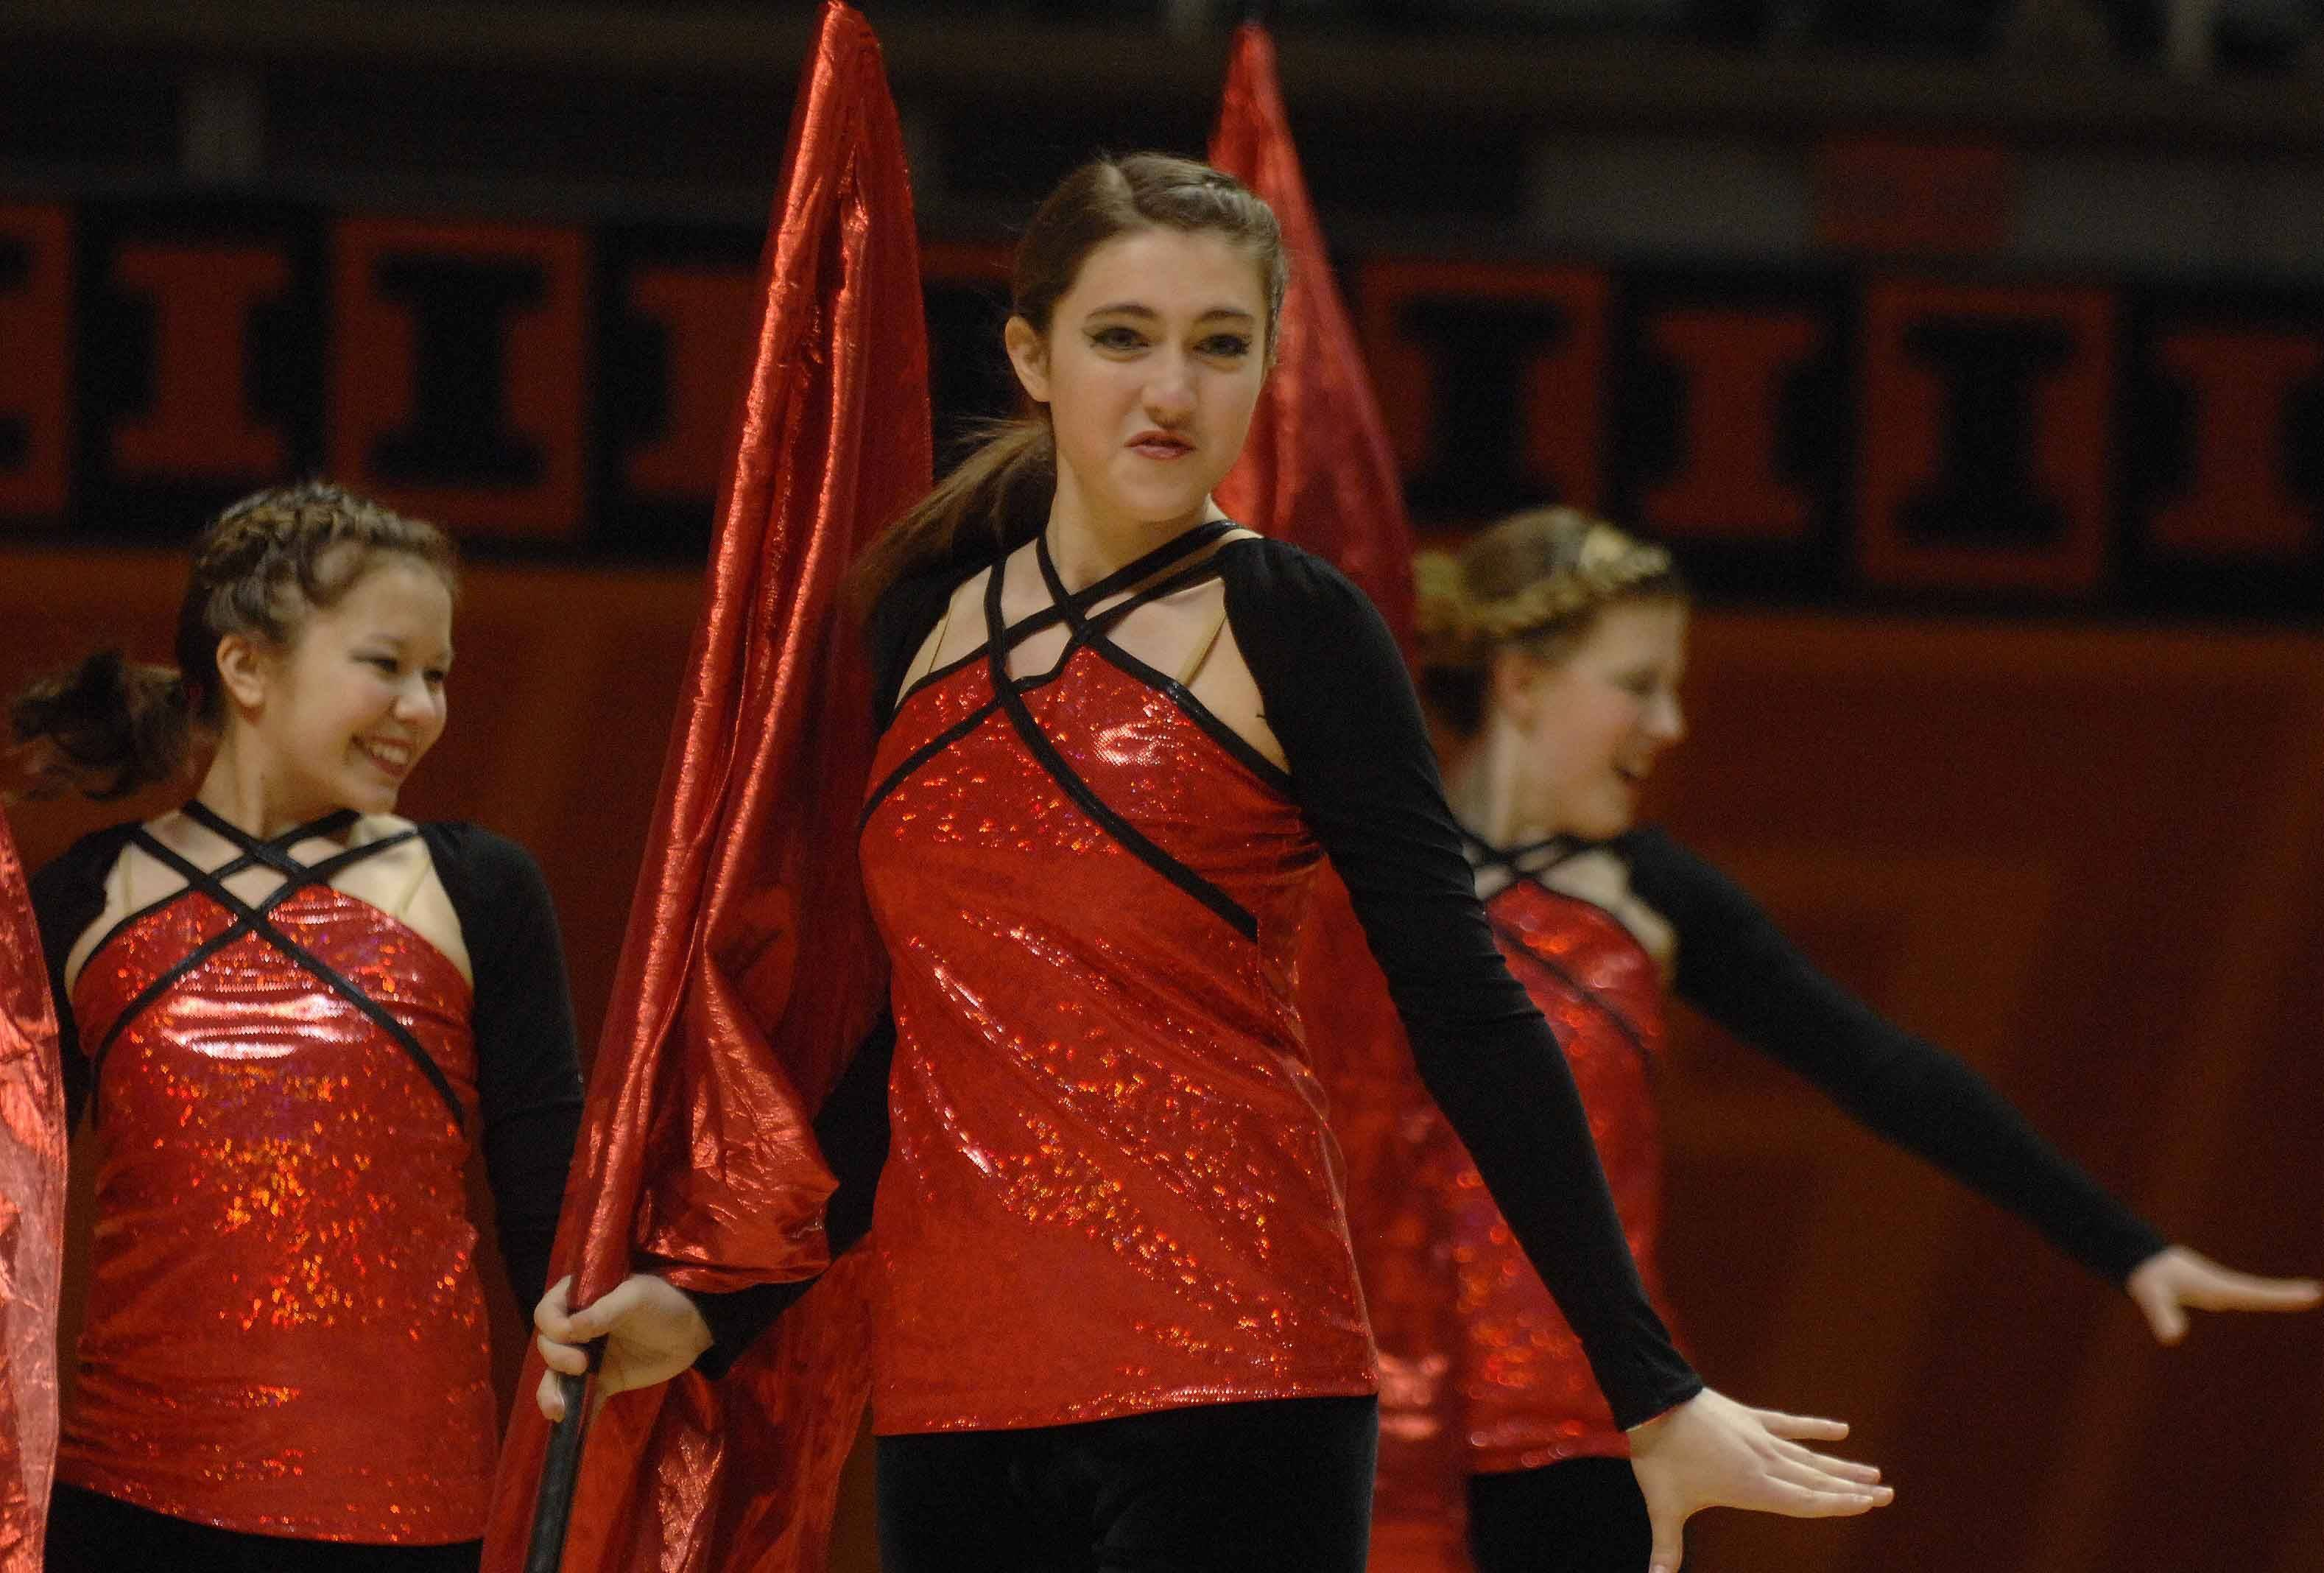 The Lake Zurich tall flag team takes part in the Illinois Drill Team Association State Finals in Champaign Saturday.